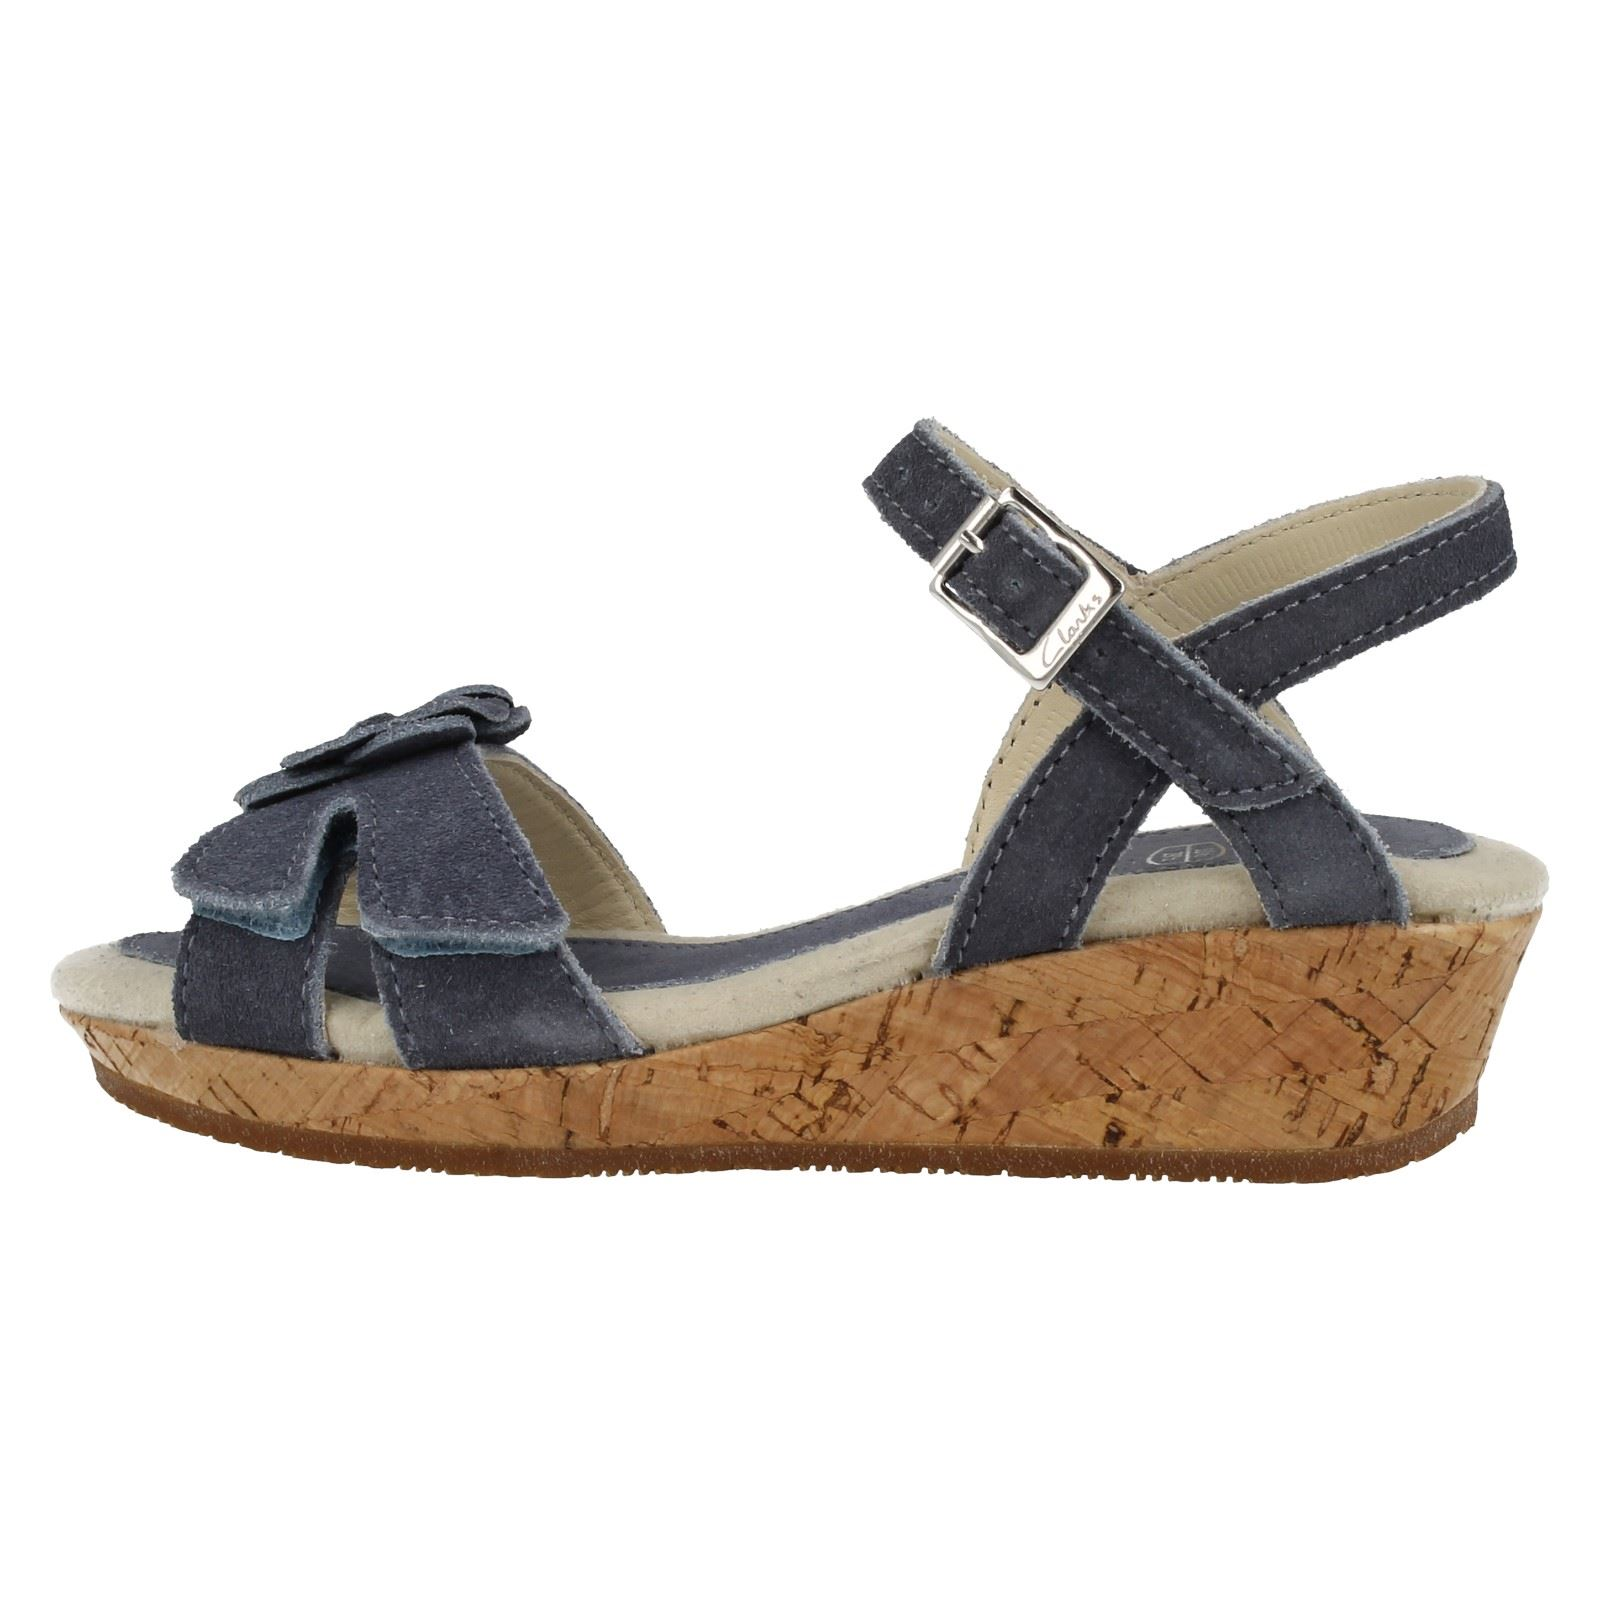 Clarks Girls Wedge Sandals Harpy Wings